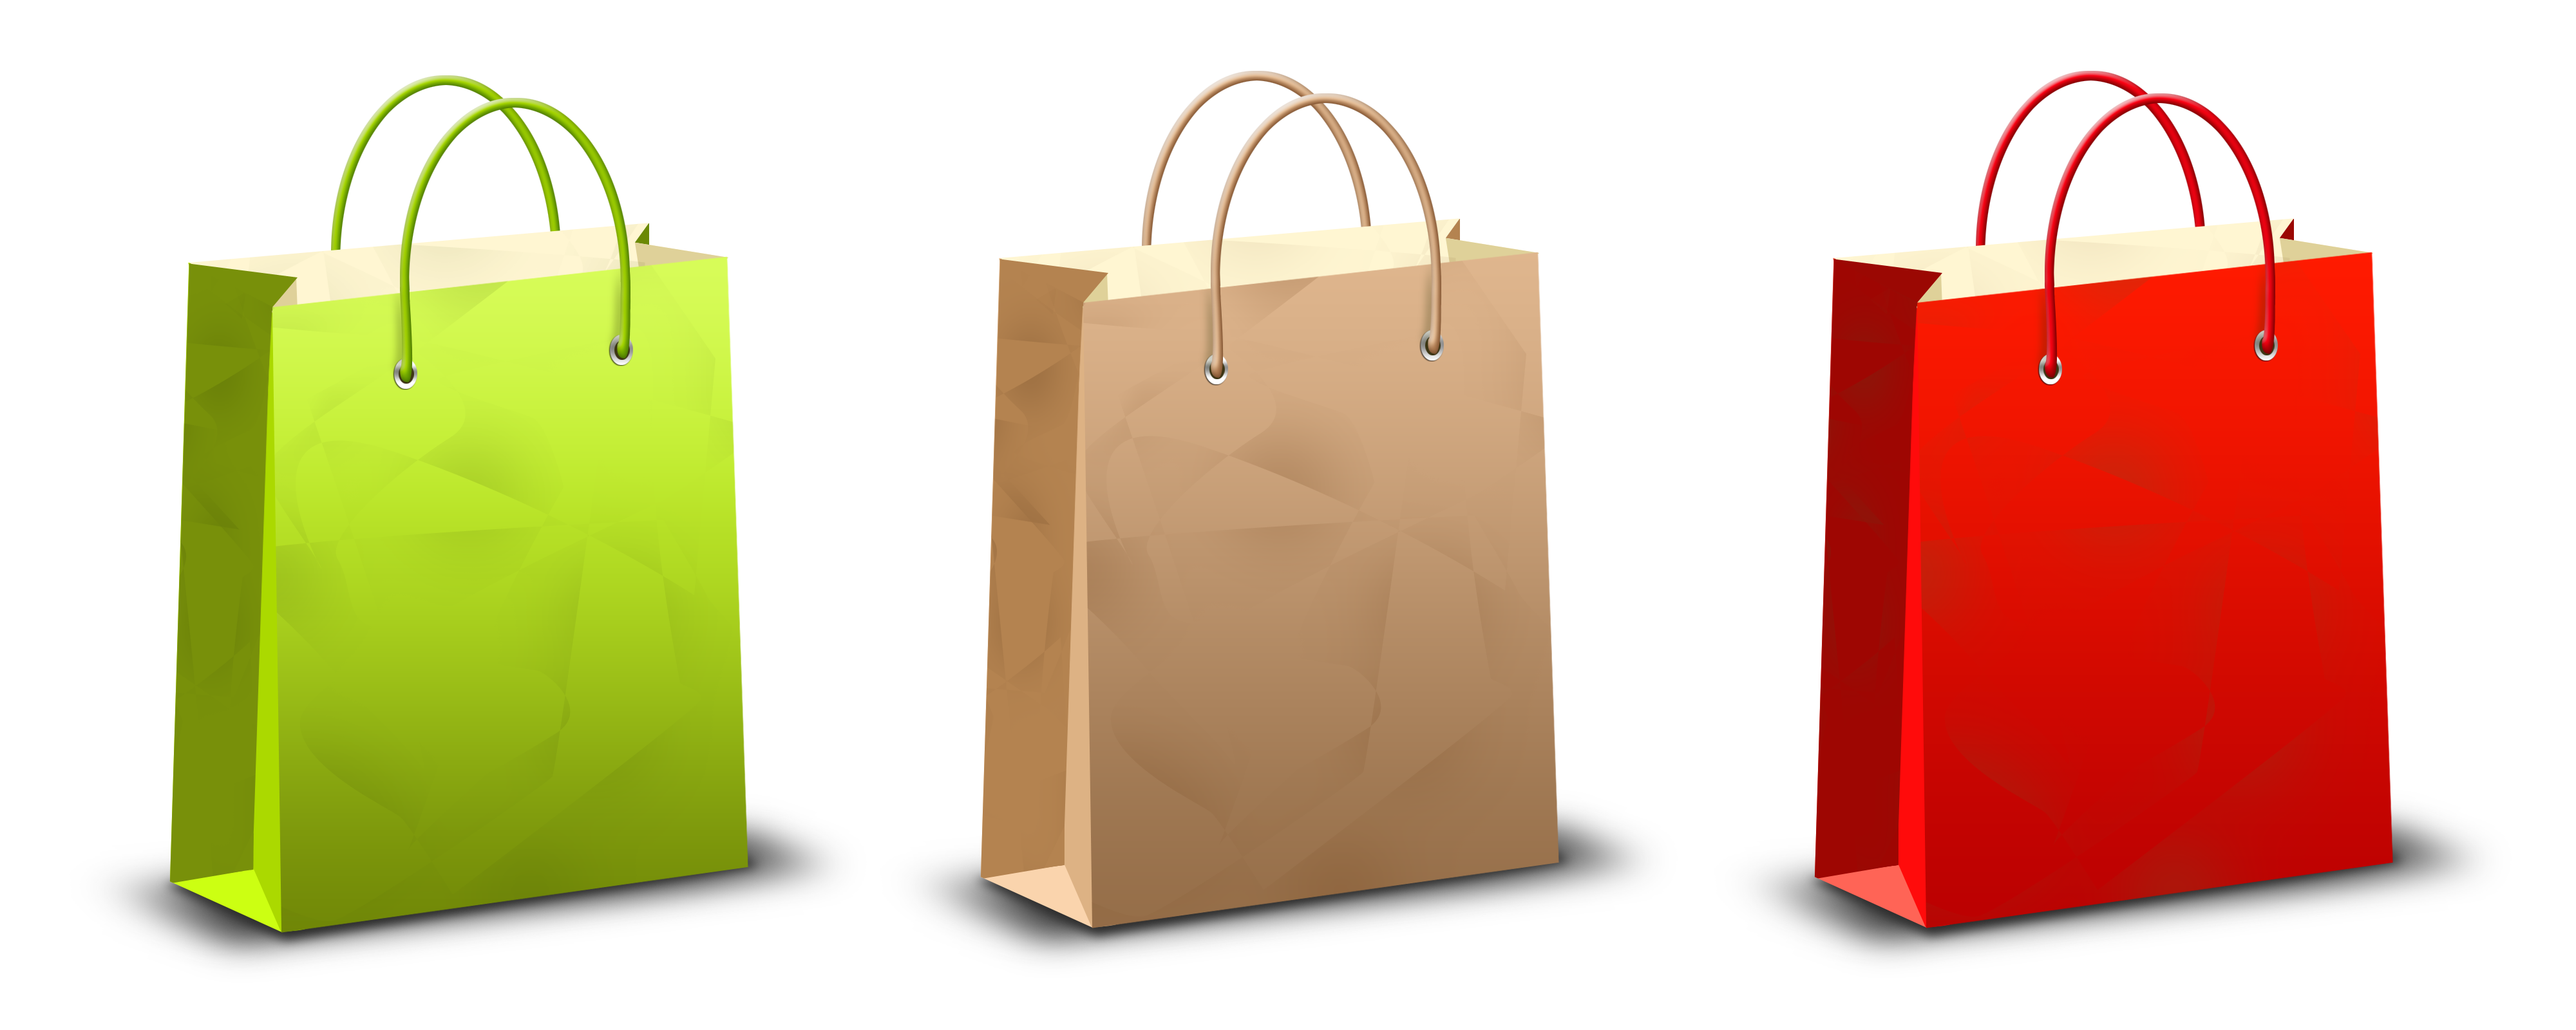 Luggage vector bag tag design. Images of shopping cart